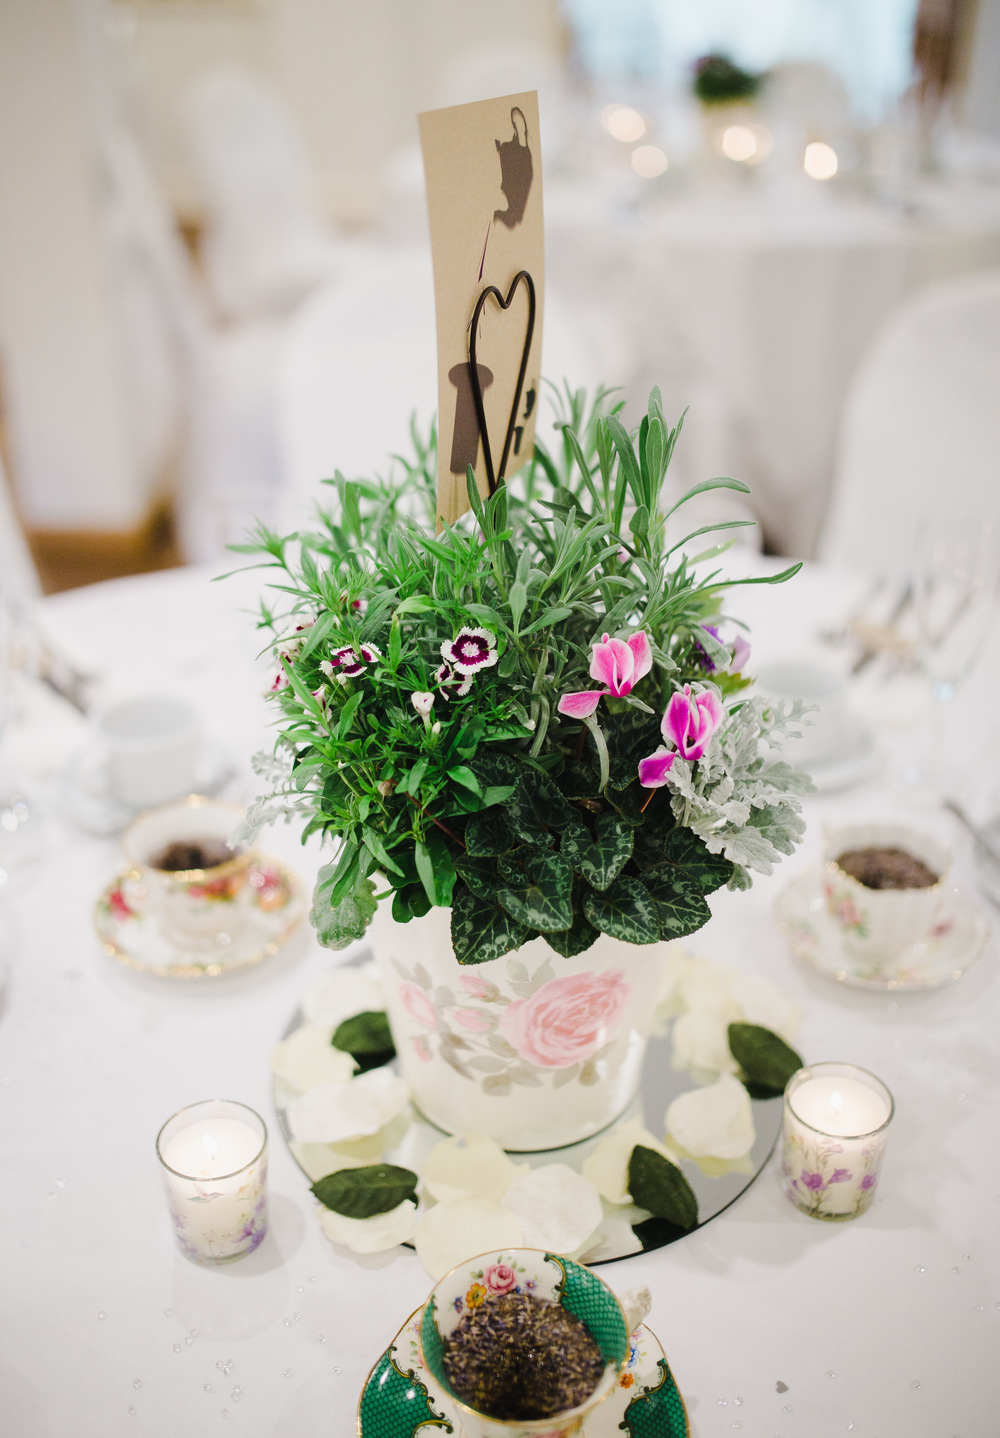 Vintage table arrangements for the relaxed wedding